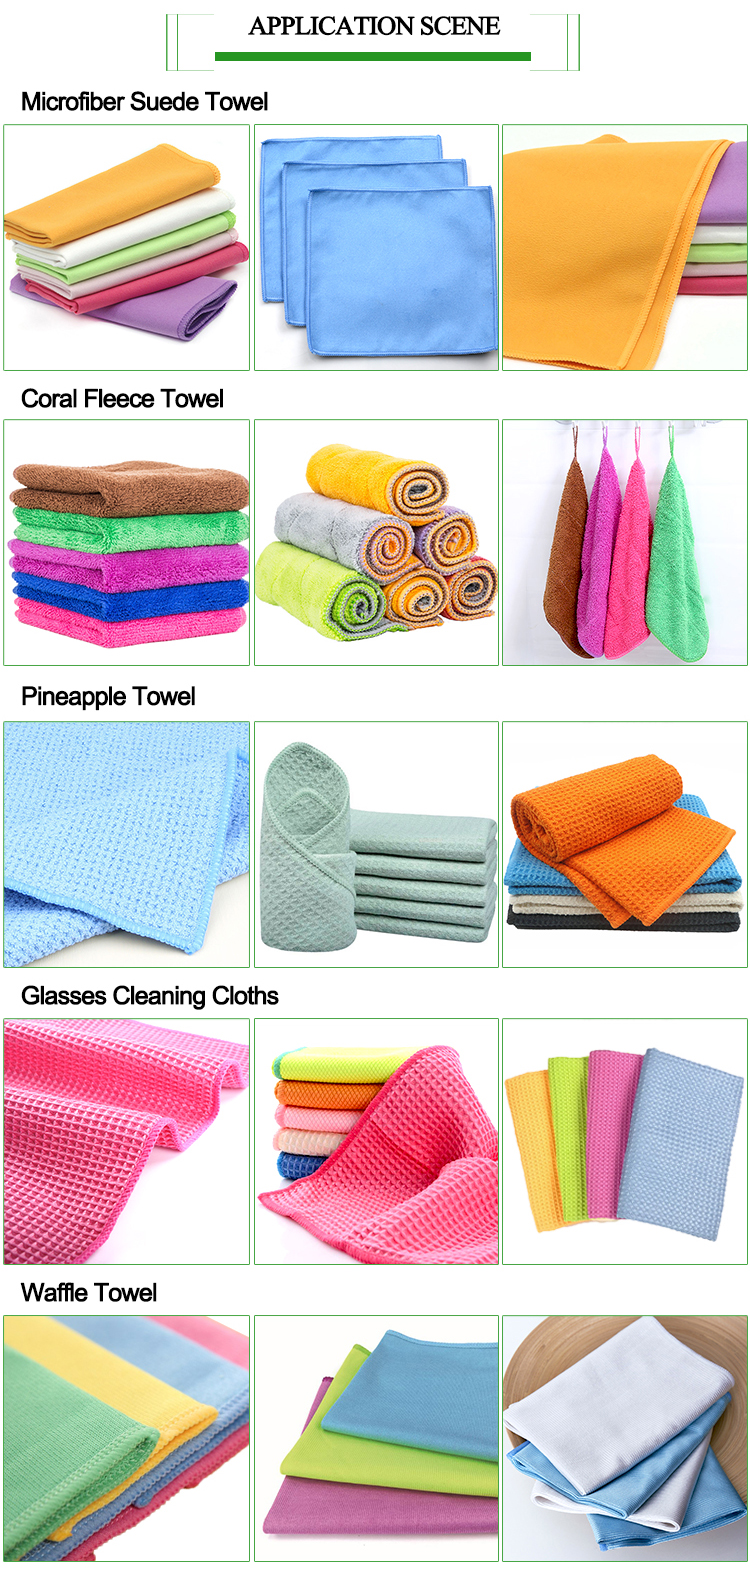 wholesale china supplier small towel for hand microfiber coral fleece cleaning towel